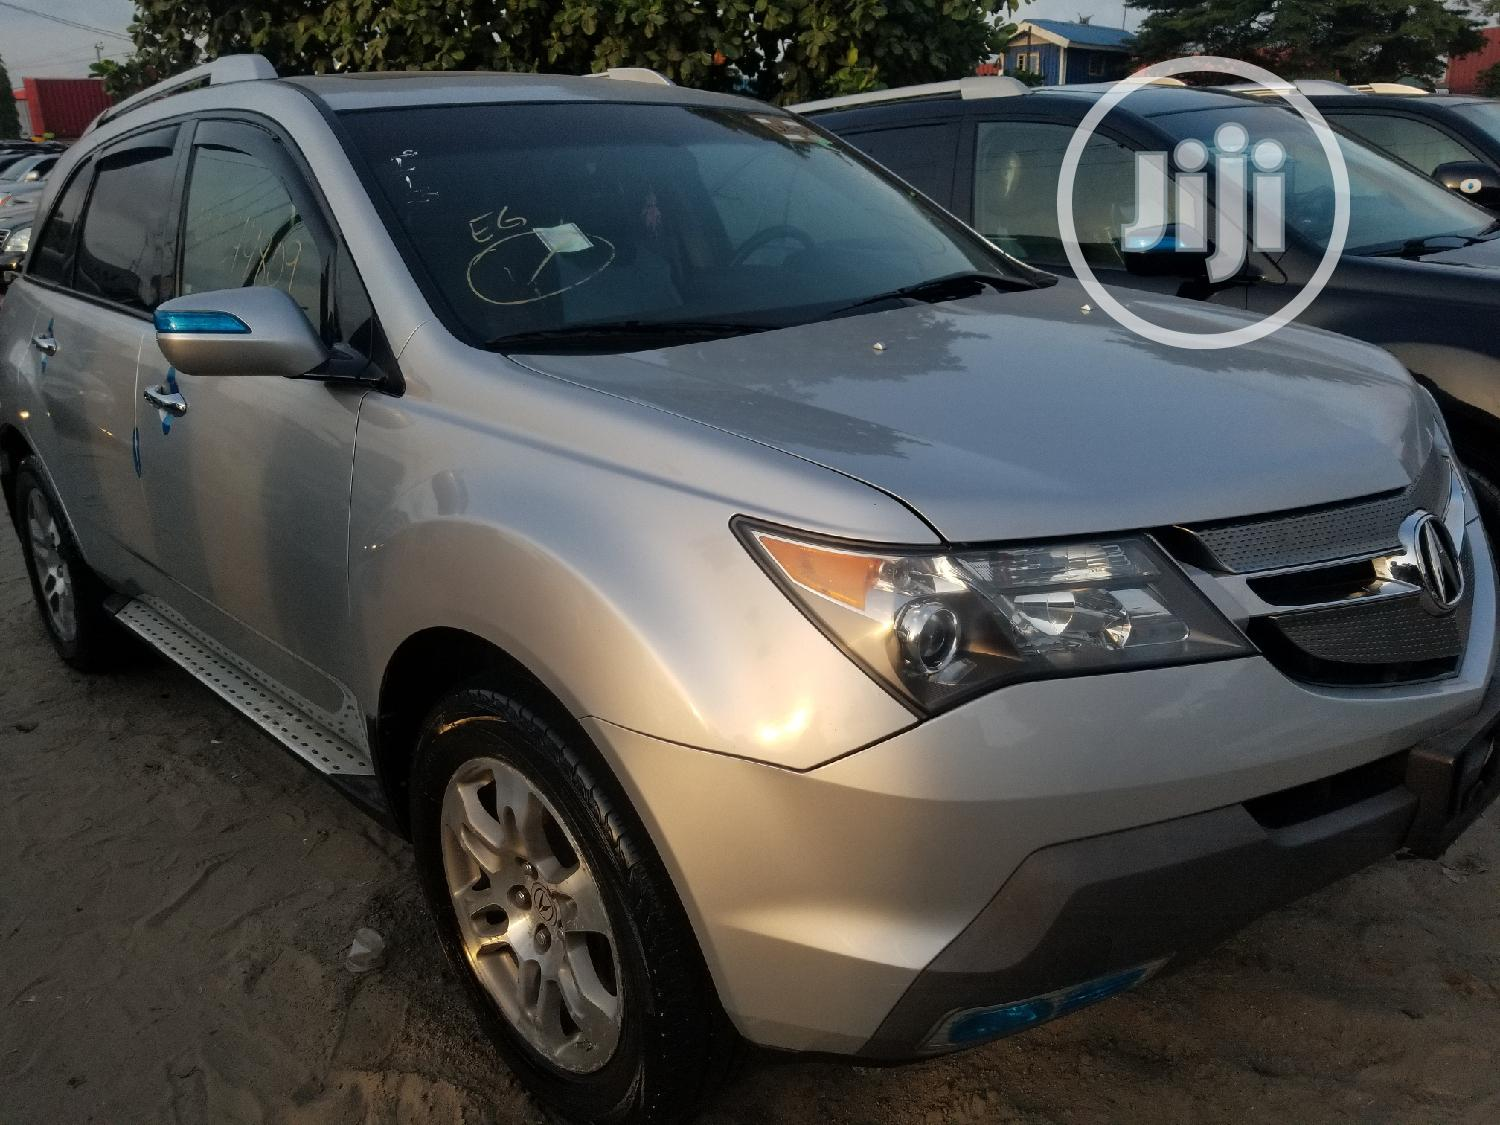 Acura MDX 2008 SUV 4dr AWD (3.7 6cyl 5A) Silver   Cars for sale in Apapa, Lagos State, Nigeria